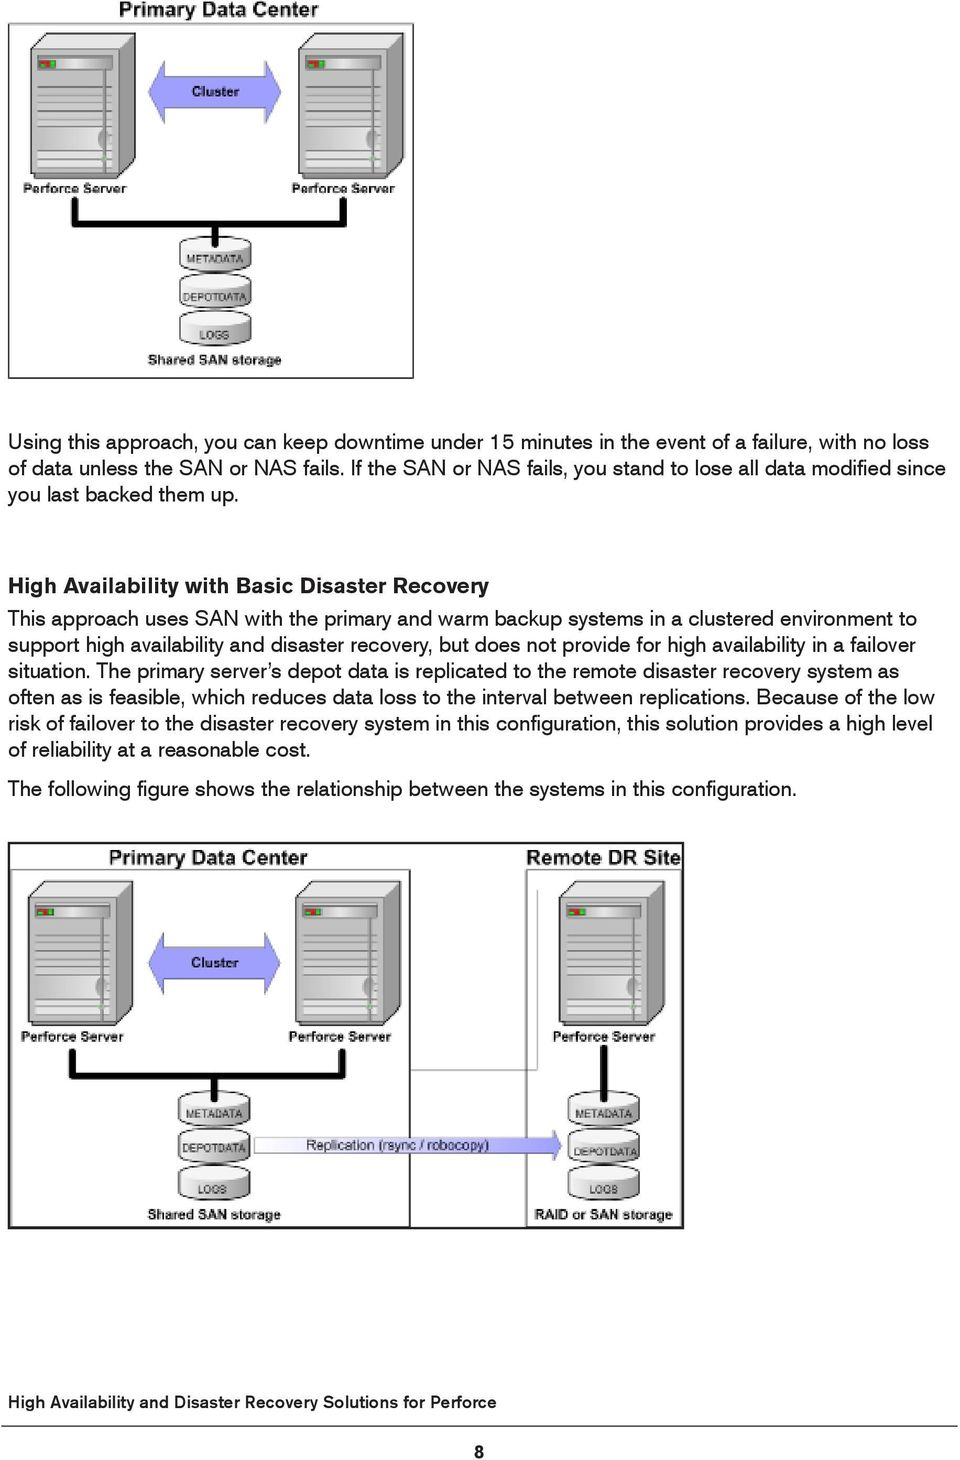 High Availability with Basic Disaster Recovery This approach uses SAN with the primary and warm backup systems in a clustered environment to support high availability and disaster recovery, but does